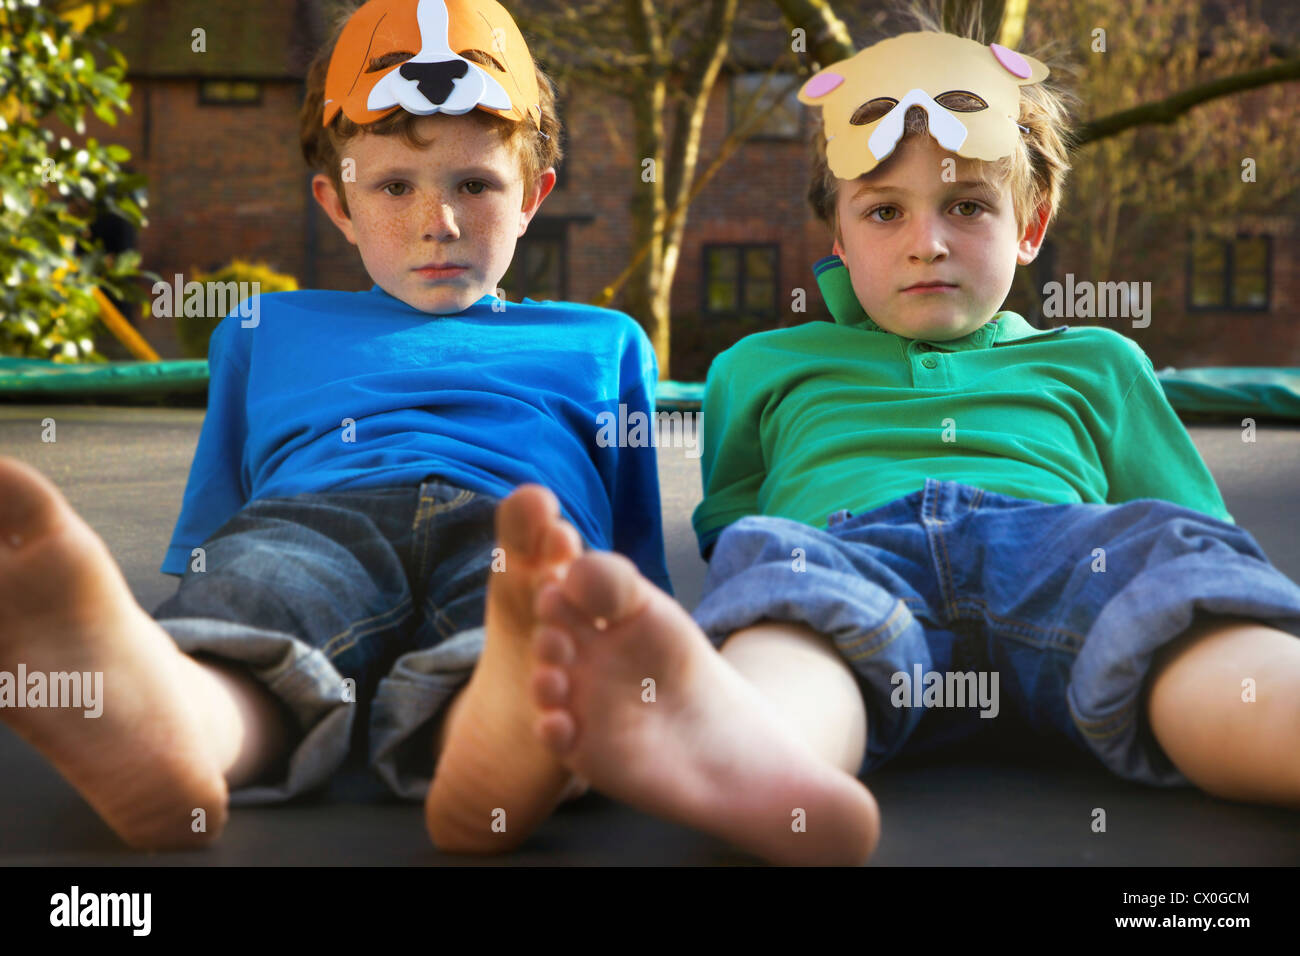 Two Boys Wearing Masks Lying on Trampoline Stock Photo